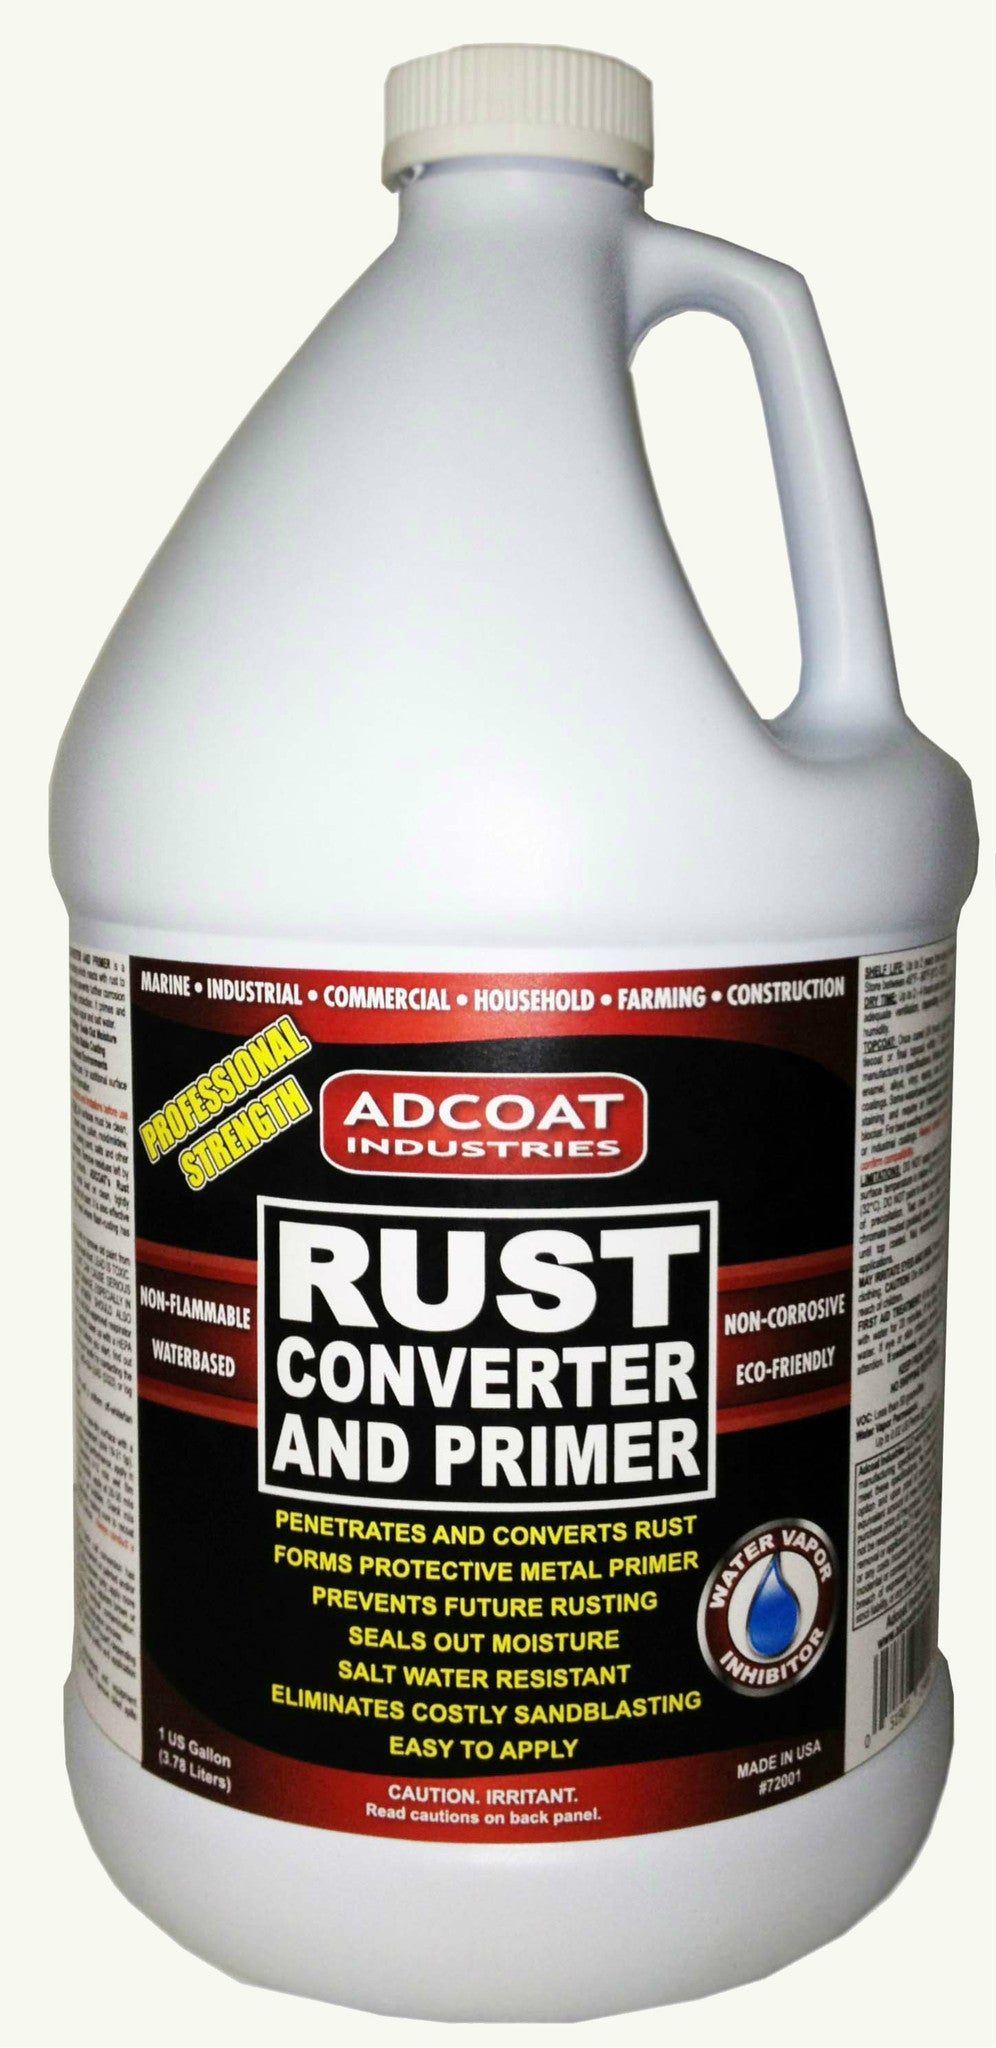 Adcoat Rust Converter And Primer 1 Gallon Adcoat